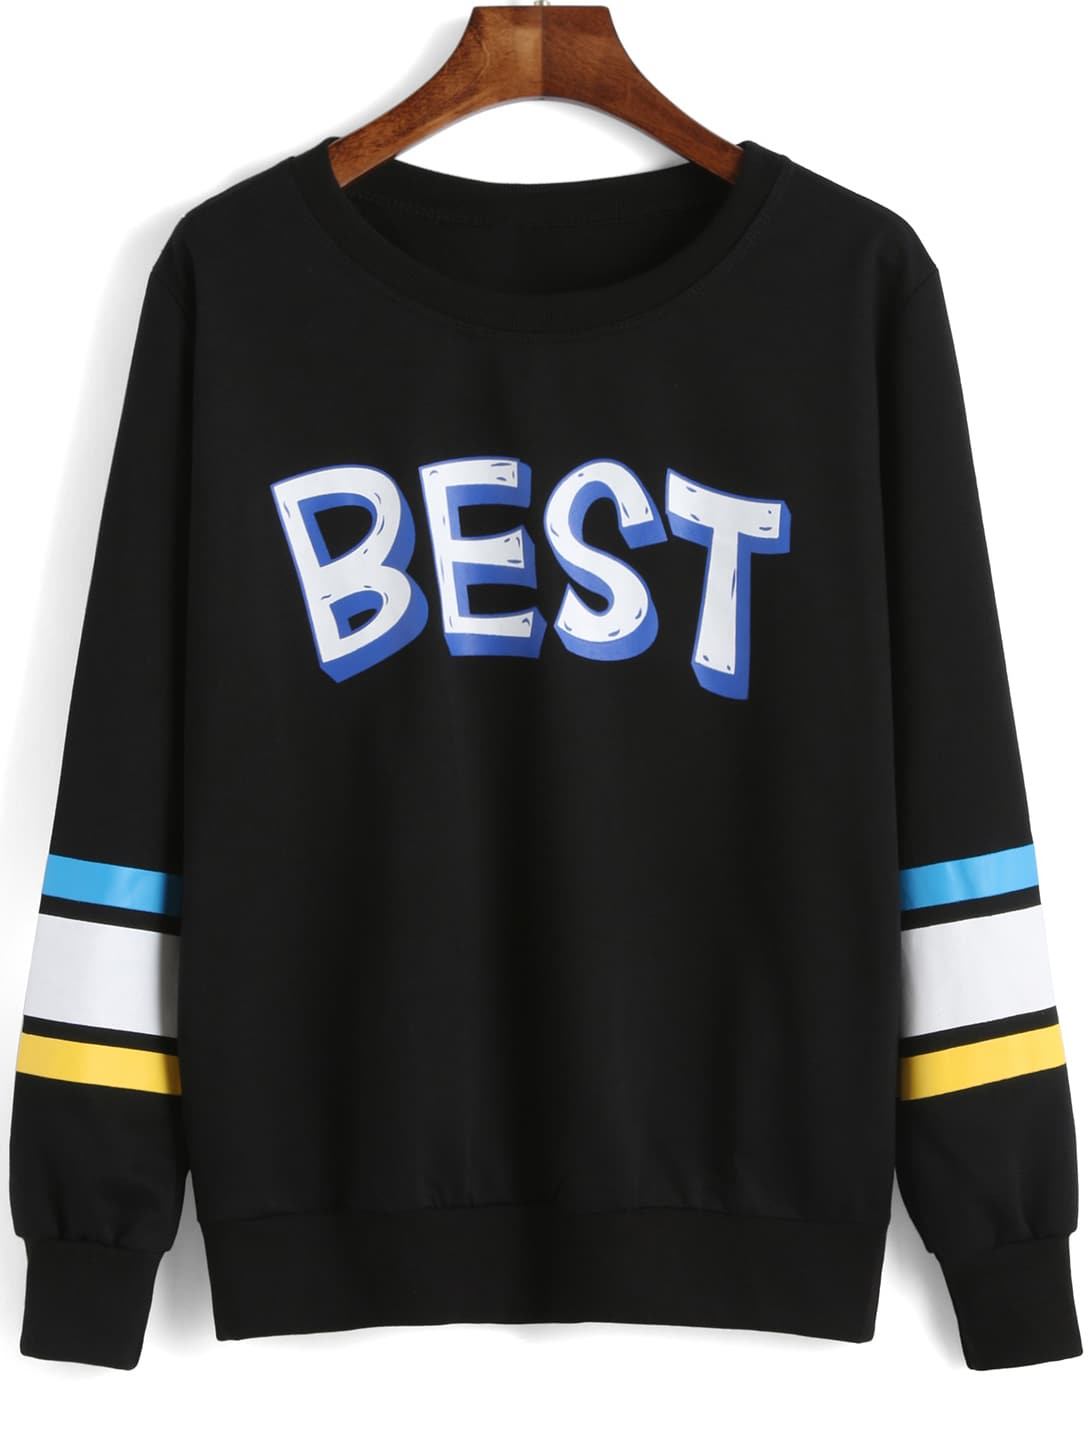 Black Round Neck BEST Print Striped Sweatshirt